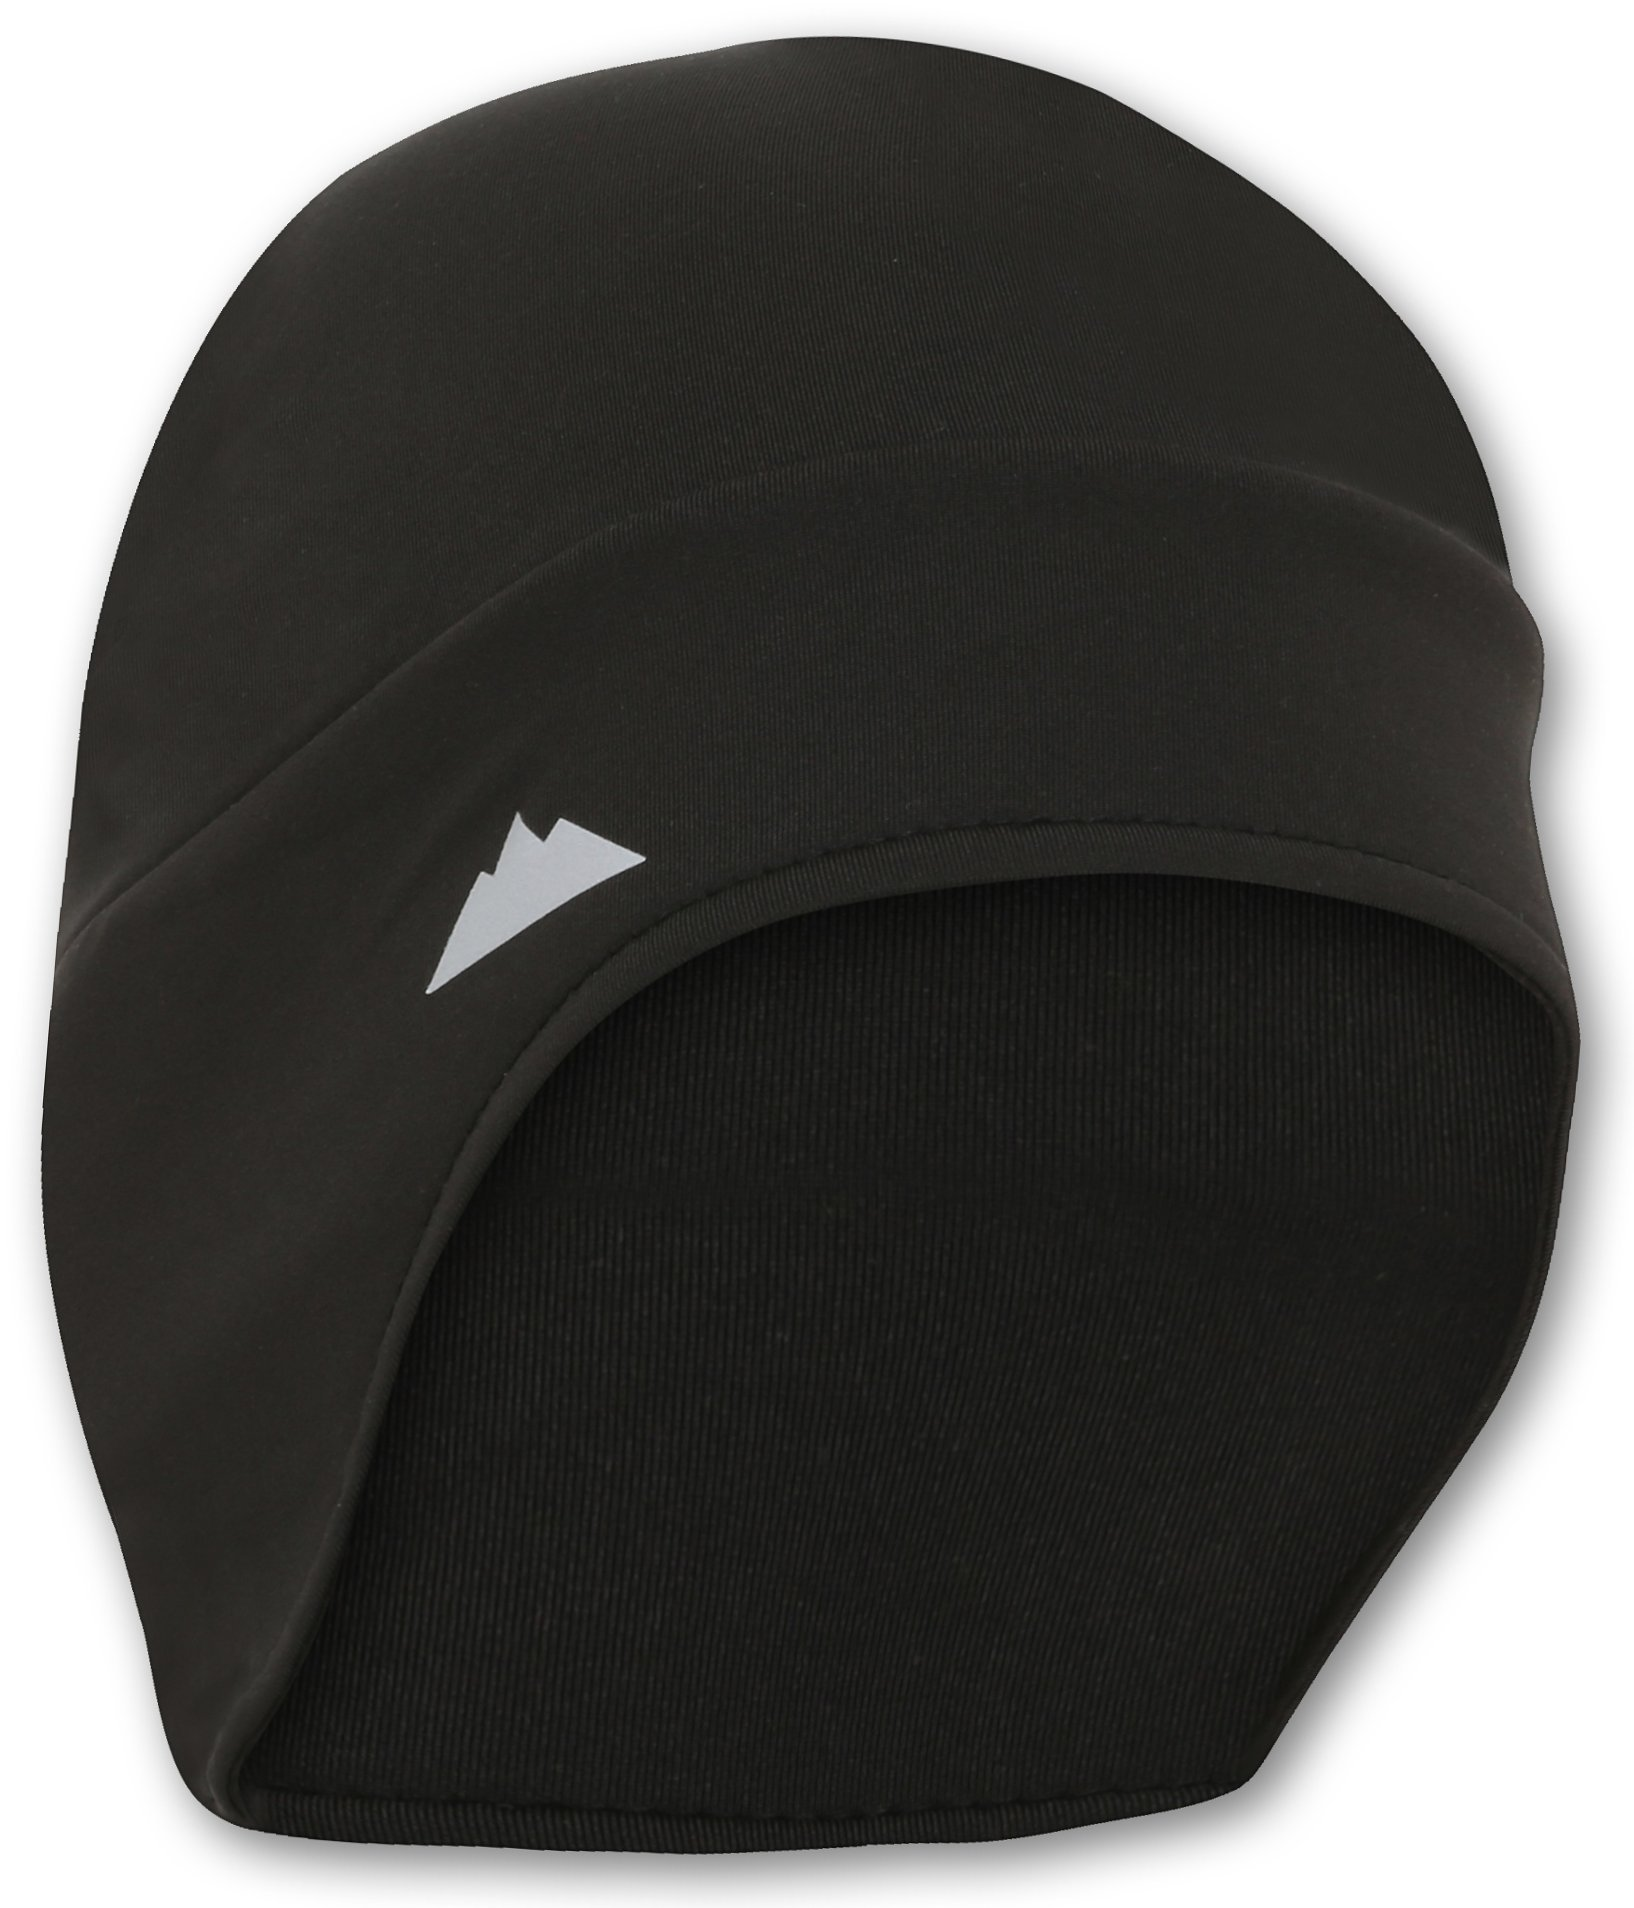 Tough Headwear Helmet Liner Skull Cap Beanie with Ear Covers - Ultimate Thermal Retention and Performance Moisture Wicking. Perfect for Running, Cycling, Skiing & Winter Sports. Fits Under Helmets product image